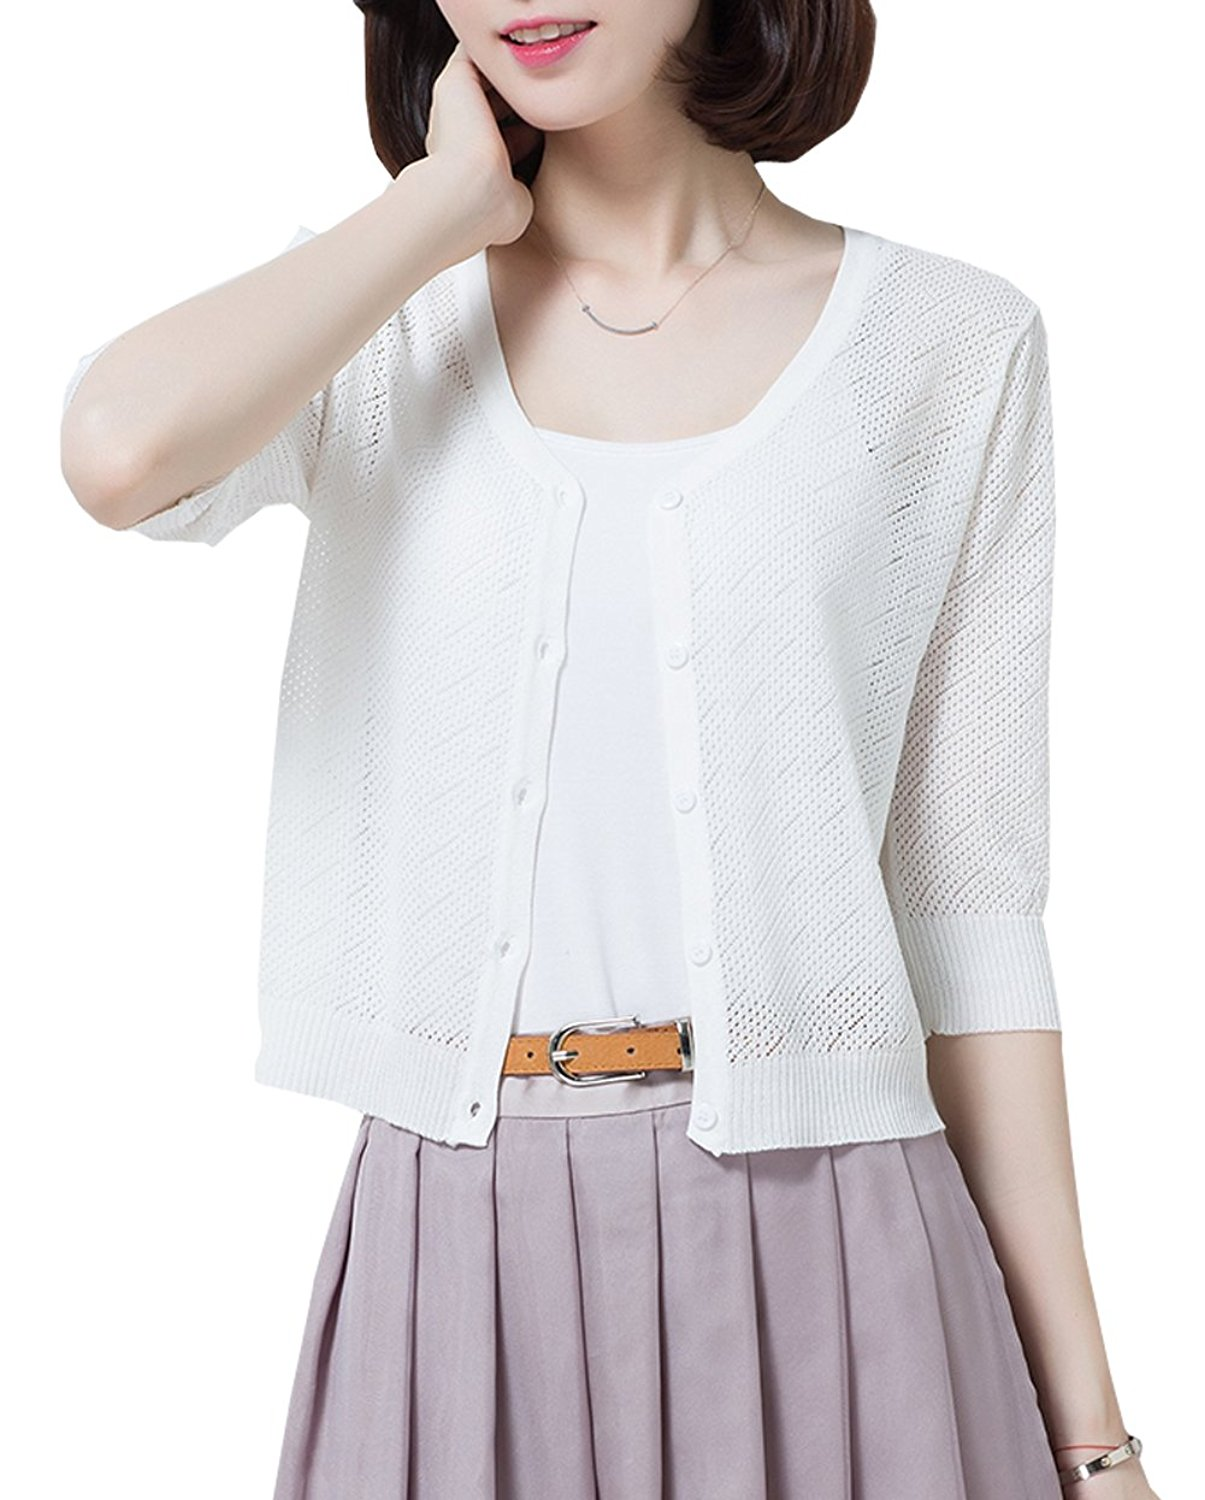 a38d4316d7 Get Quotations · NianEr Summer V Neck Short Cardigans for Women Button up  Knit 3 4 Sleeve Cropped Cardigan